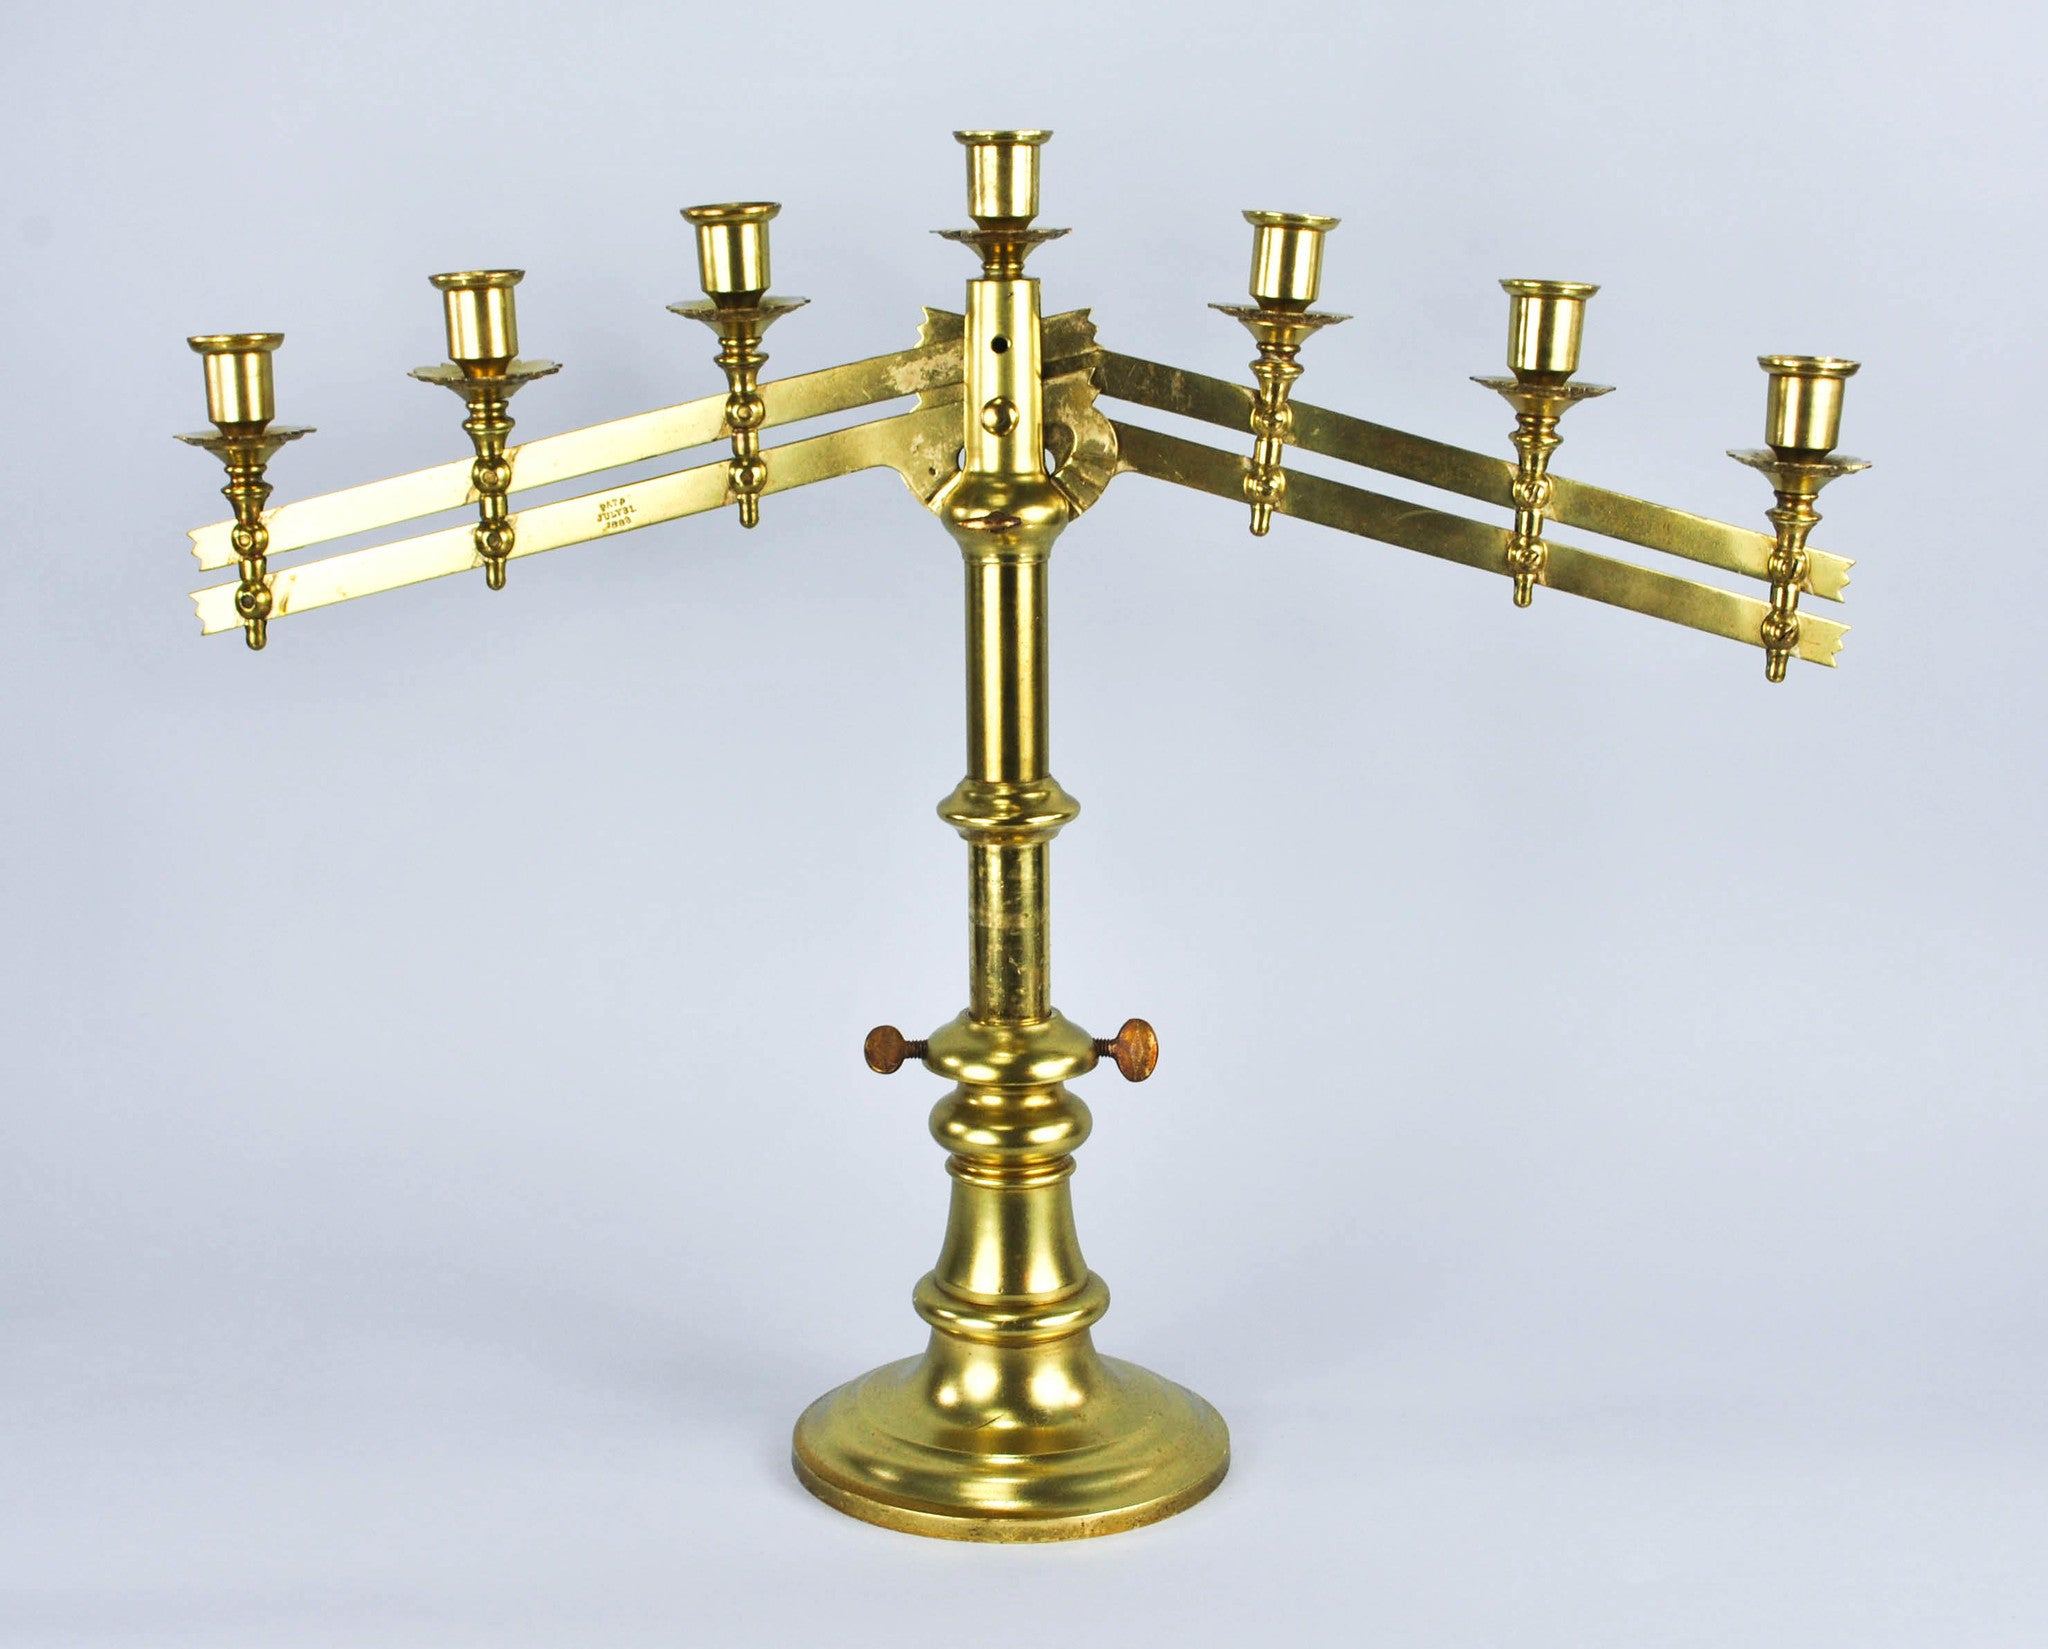 61e1d4e13 19th Century Adjustable Brass Menorah Altar Candelabra 7 Arm Candle Ho -  Historic Accents